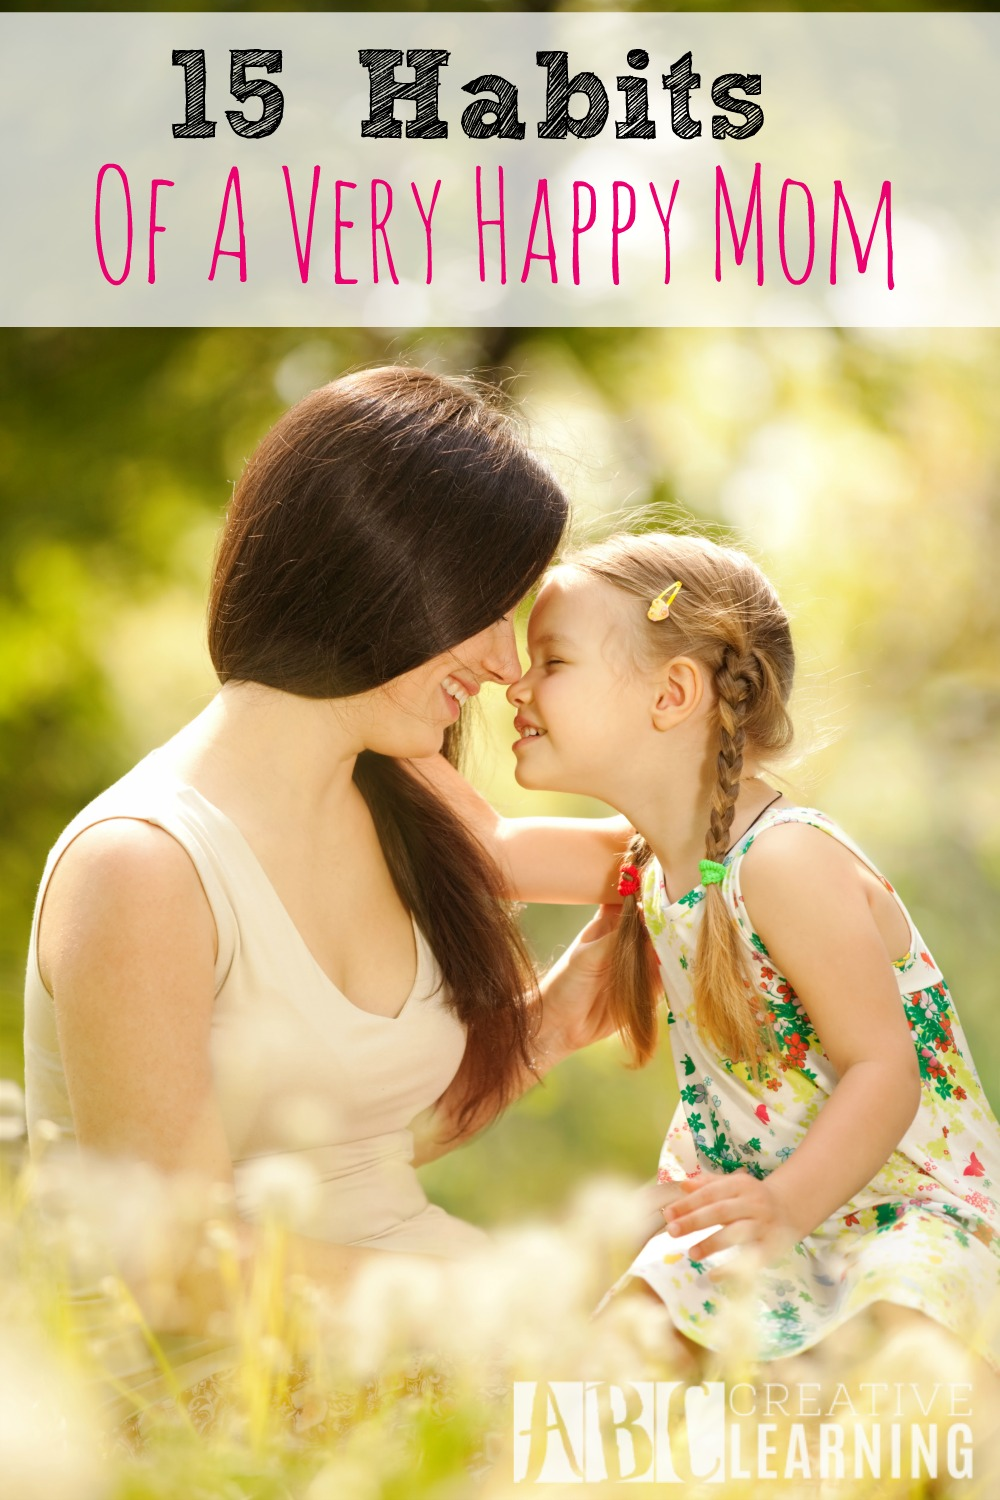 When you become a mom you imagine everything will be wonderful, then reality hits and you realize it is a tough job. Here are 15 Habits Of A Very Happy Mom, that are perfect for reminding you that while it may not be perfect, it is still an amazing life you are living. These things help moms everywhere to remain happy no matter what challenges come your way. - abccreativelearning.com